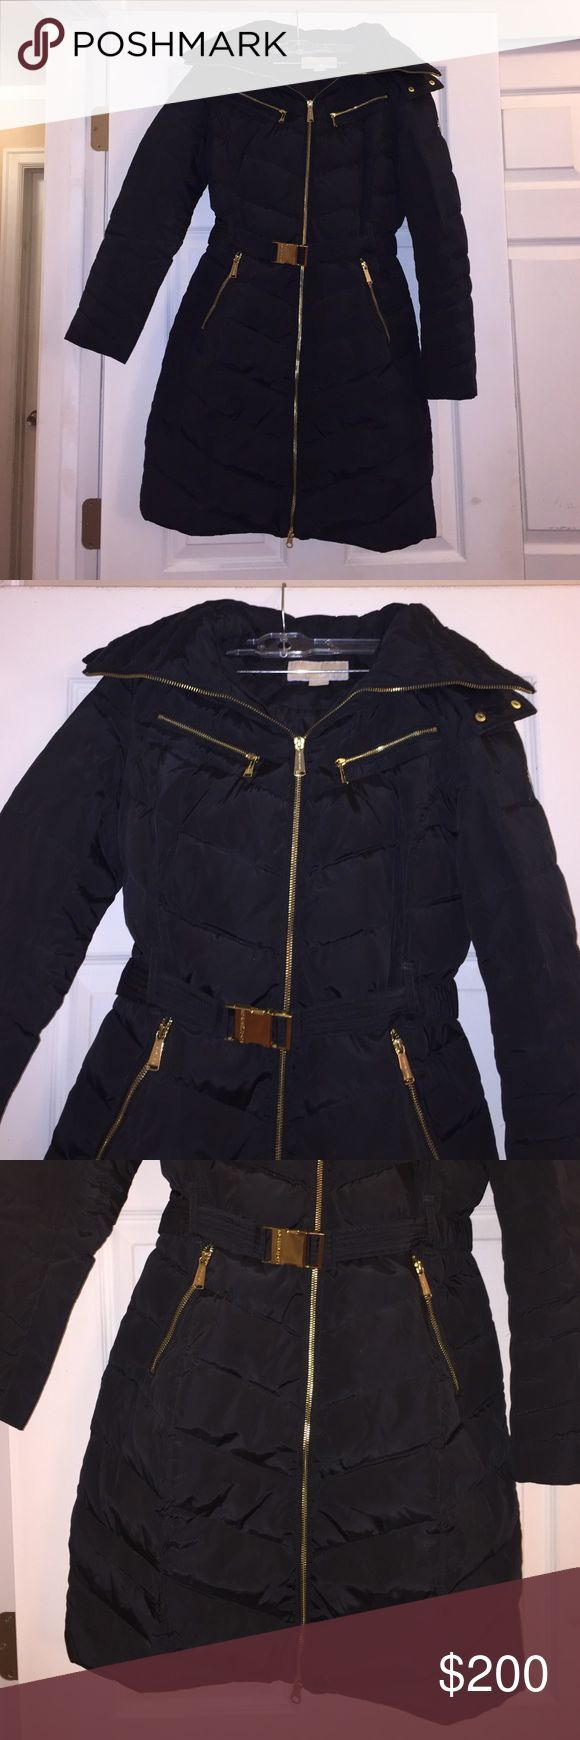 Micheal Michael Kors Black Long Puffer Coat XS New. Black long Puffer coat. Lined. Pockets. Belt. Removable hood. Faux Fur. Size XS. 100% polyester. Measured across: shoulder to shoulder 15in, armpit to armpit 18in, waist 14in, hips 21in, sleeve length 23.5in, length 35in. MICHAEL Michael Kors Jackets & Coats Puffers